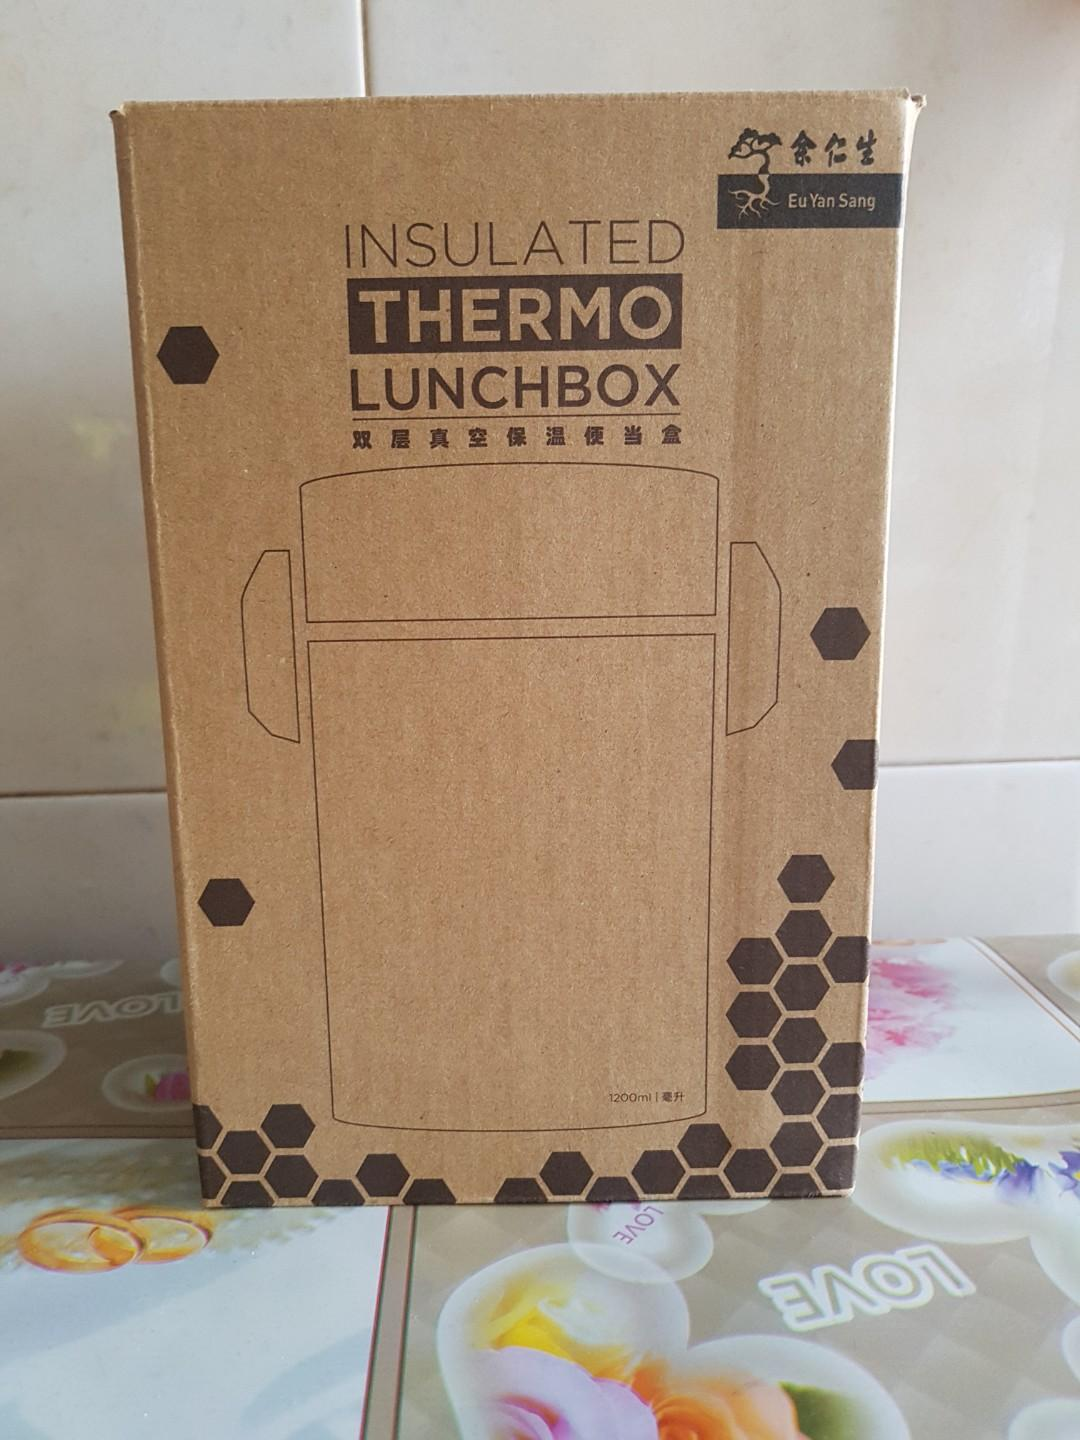 NEW Insulated Thermo Lunchbox